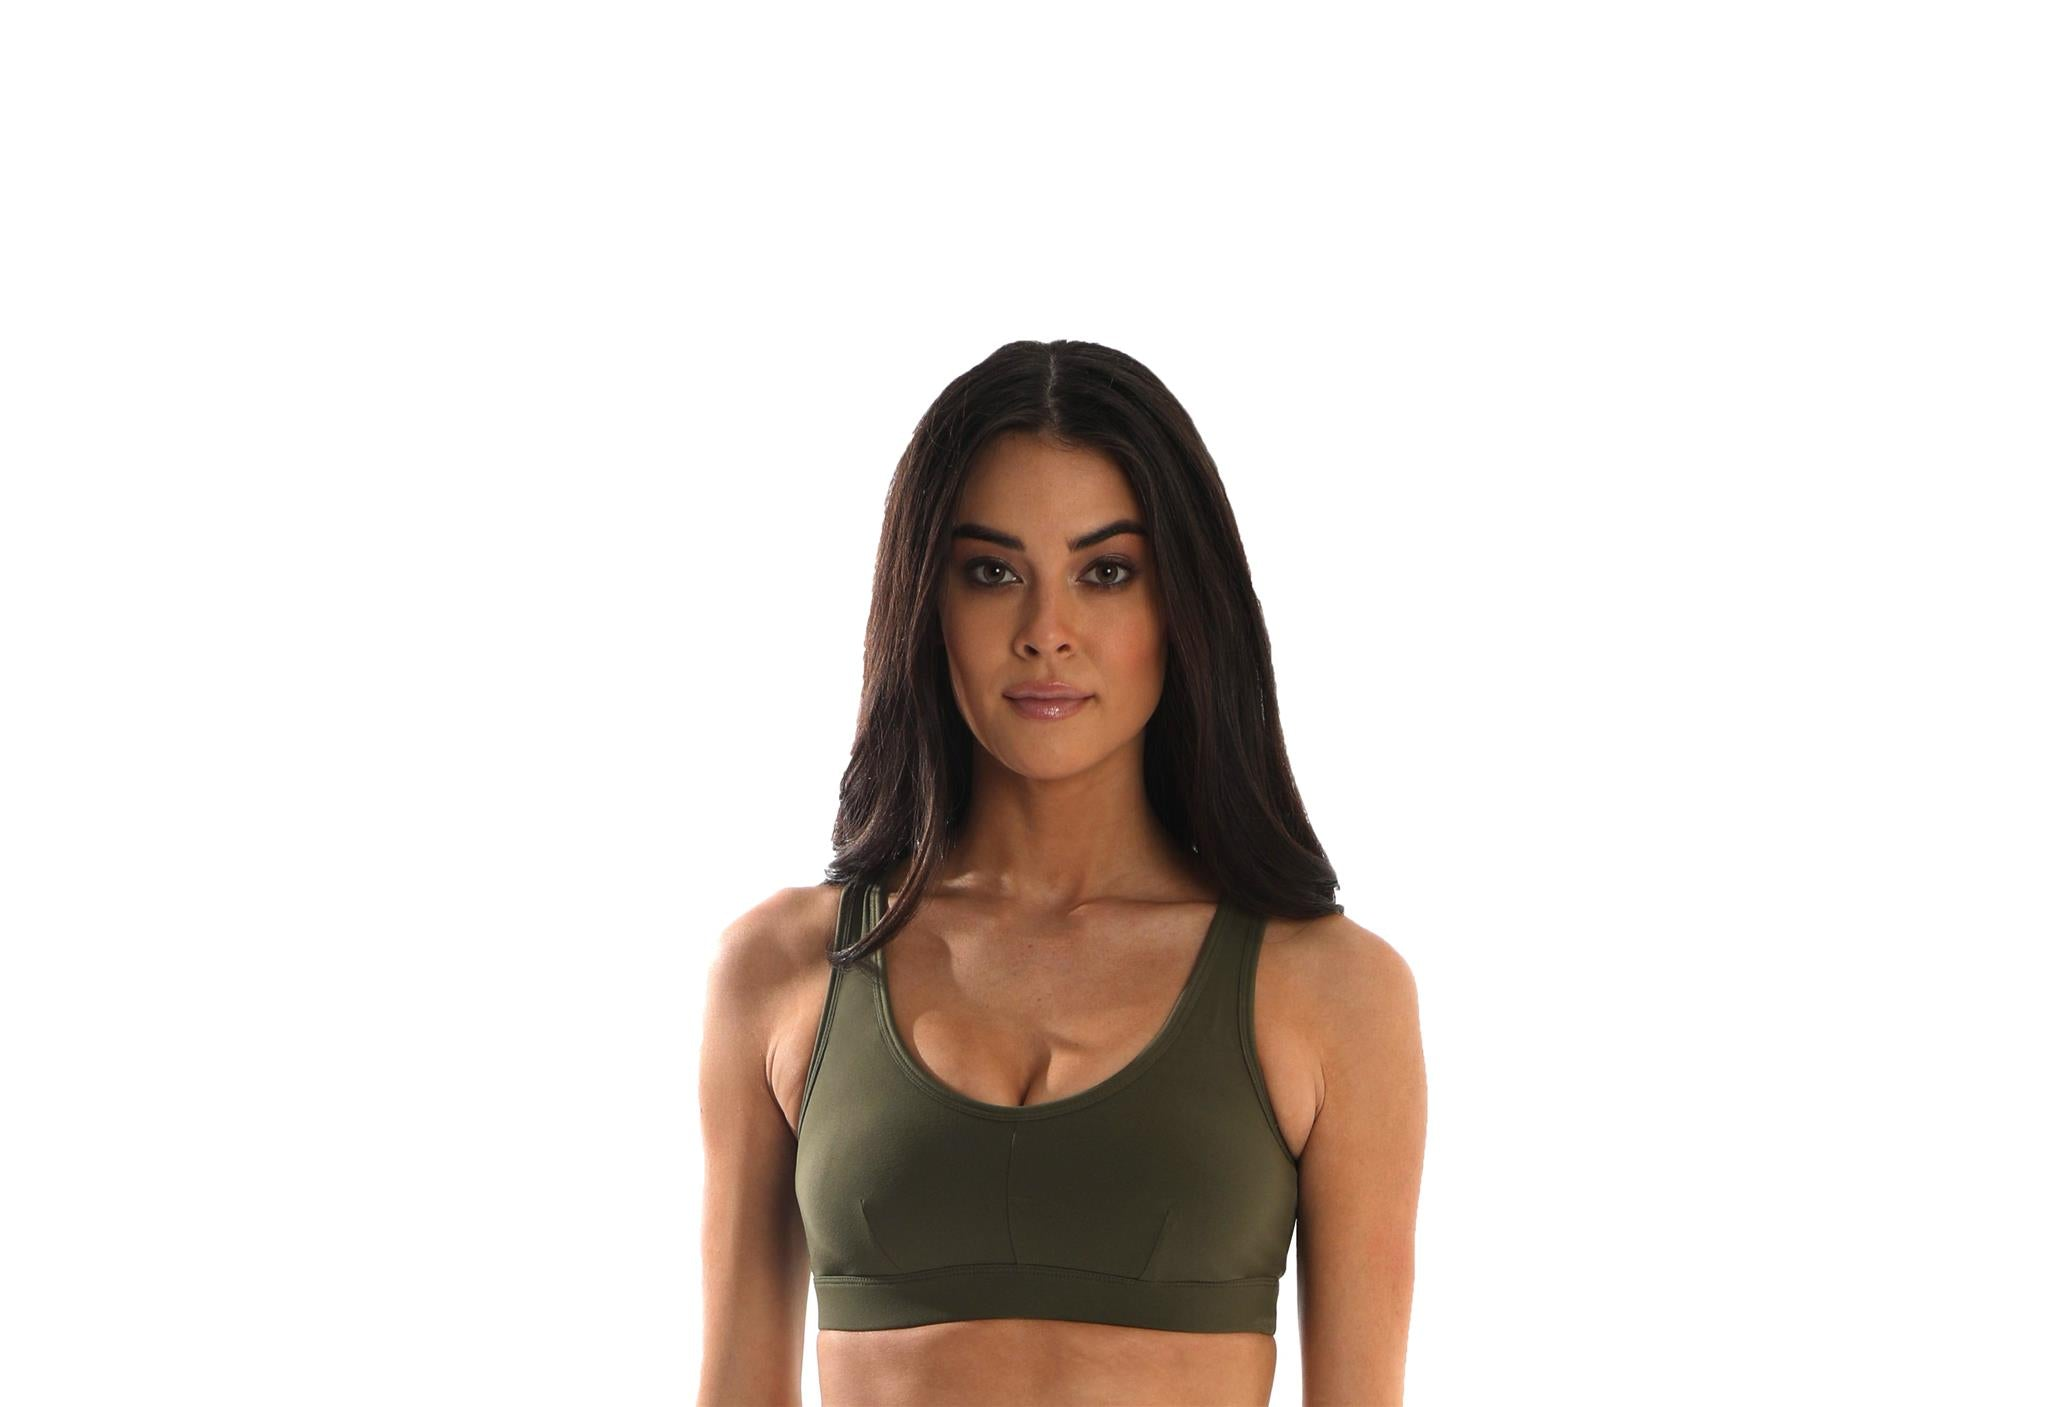 Trendsetter Women's Sports Bra - Army Green